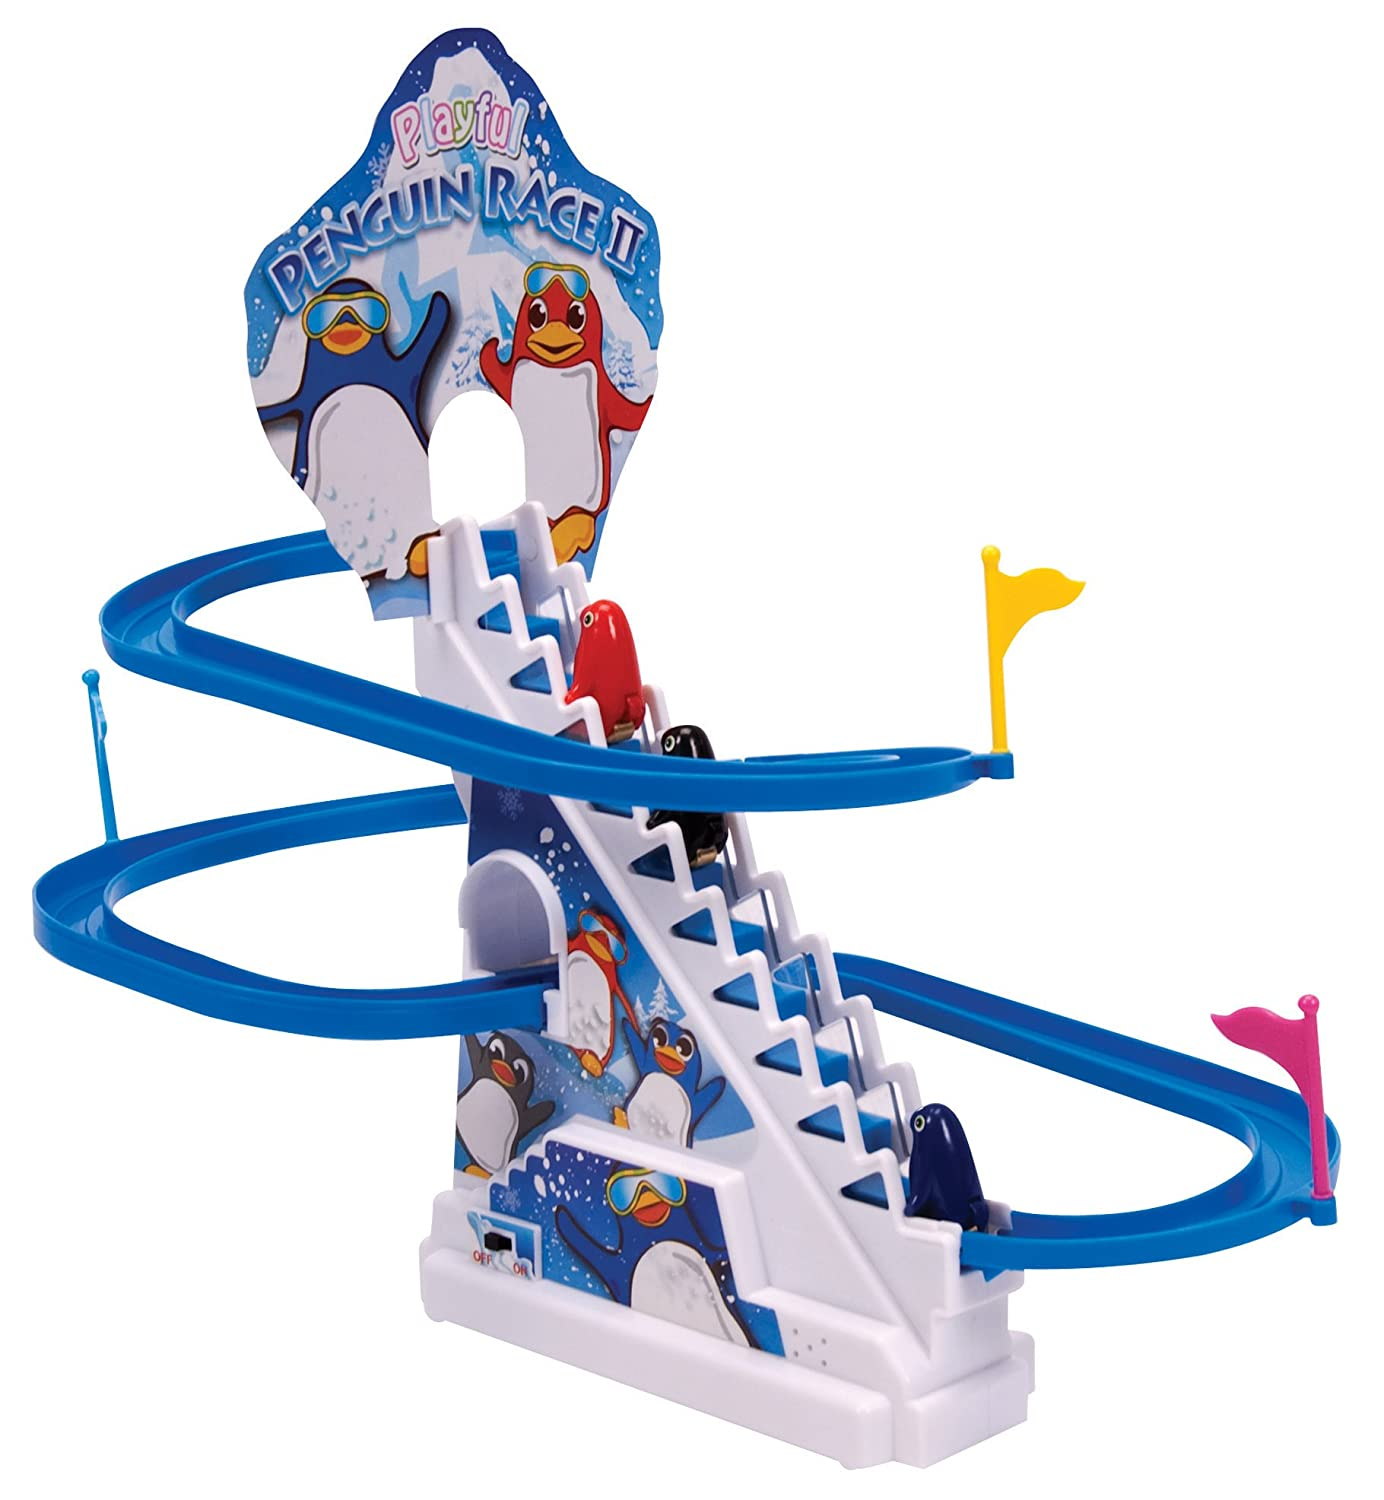 Amazing Toys For Boys : Kid toys play game winter christmas fun activity penguin